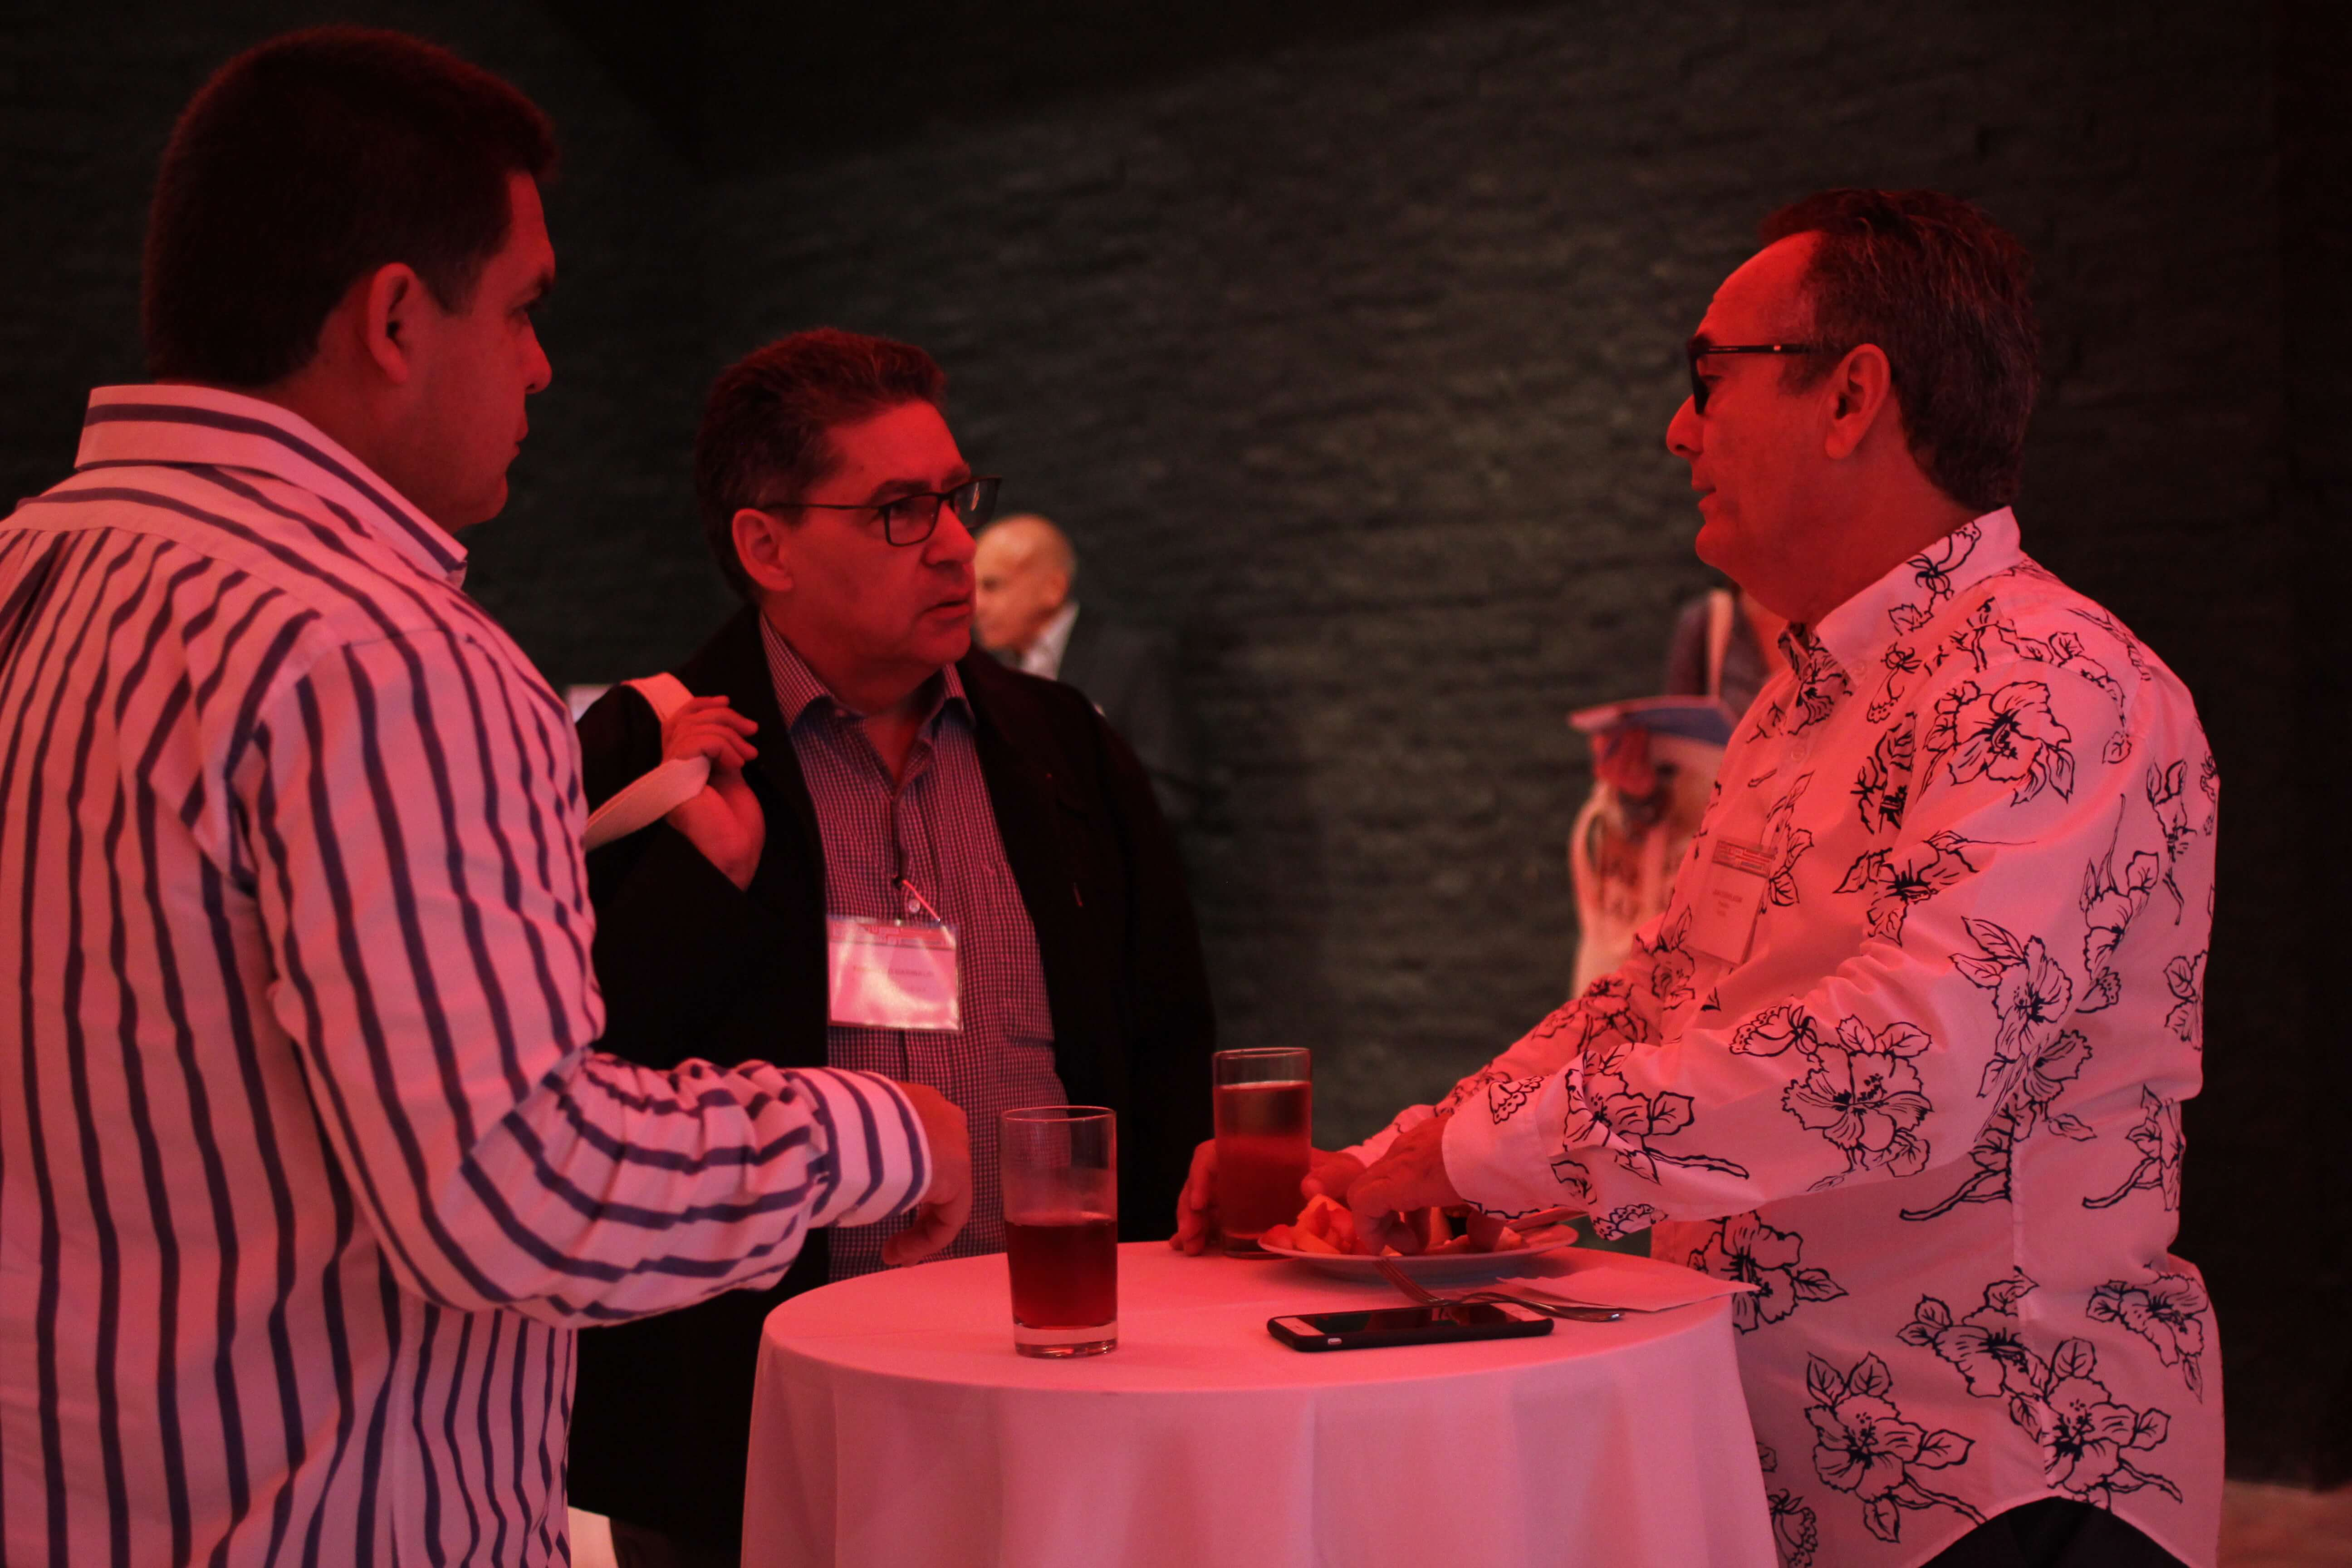 Three men chatting with drinks